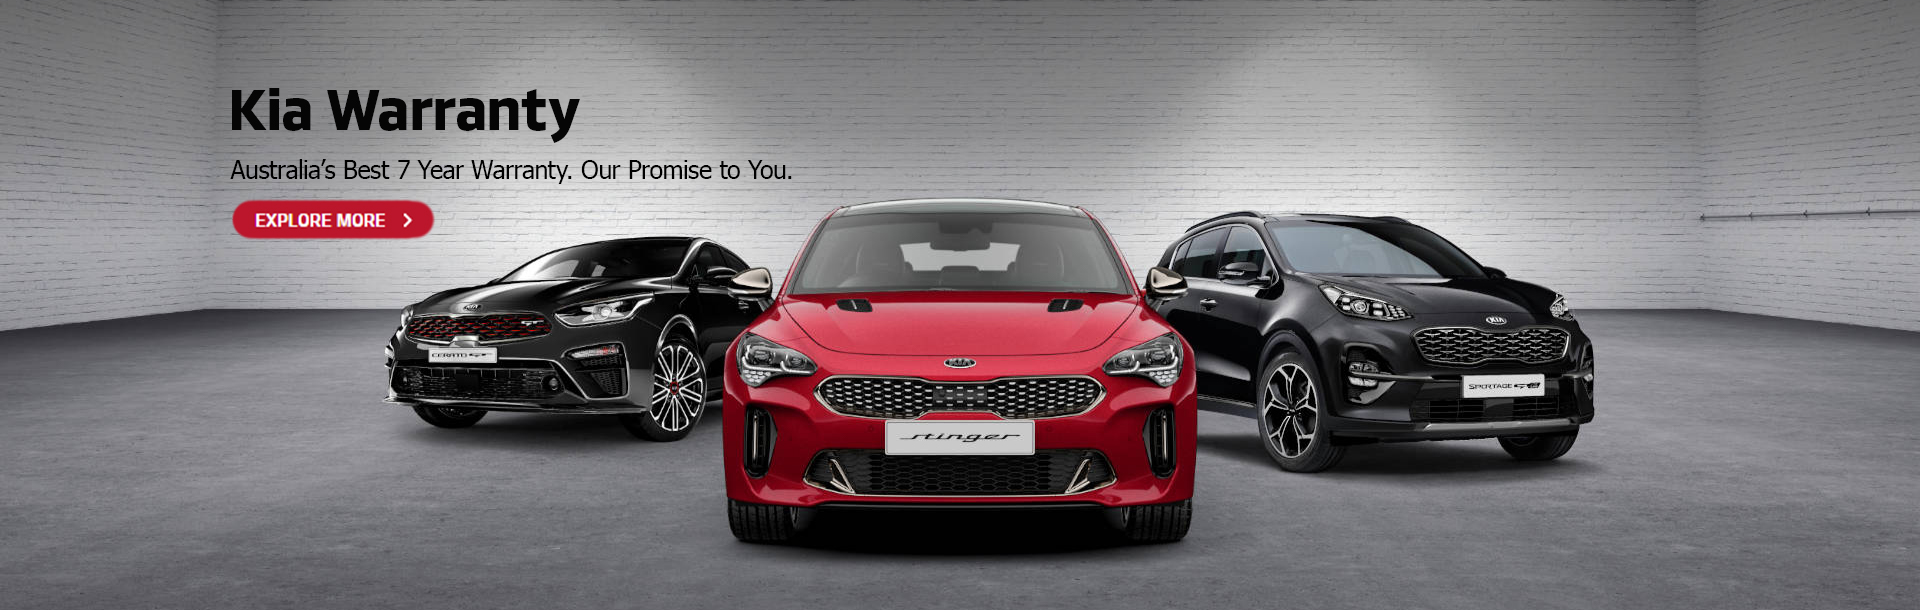 Kia Warranty. Australia's best 7 year warranty. Our promise to you